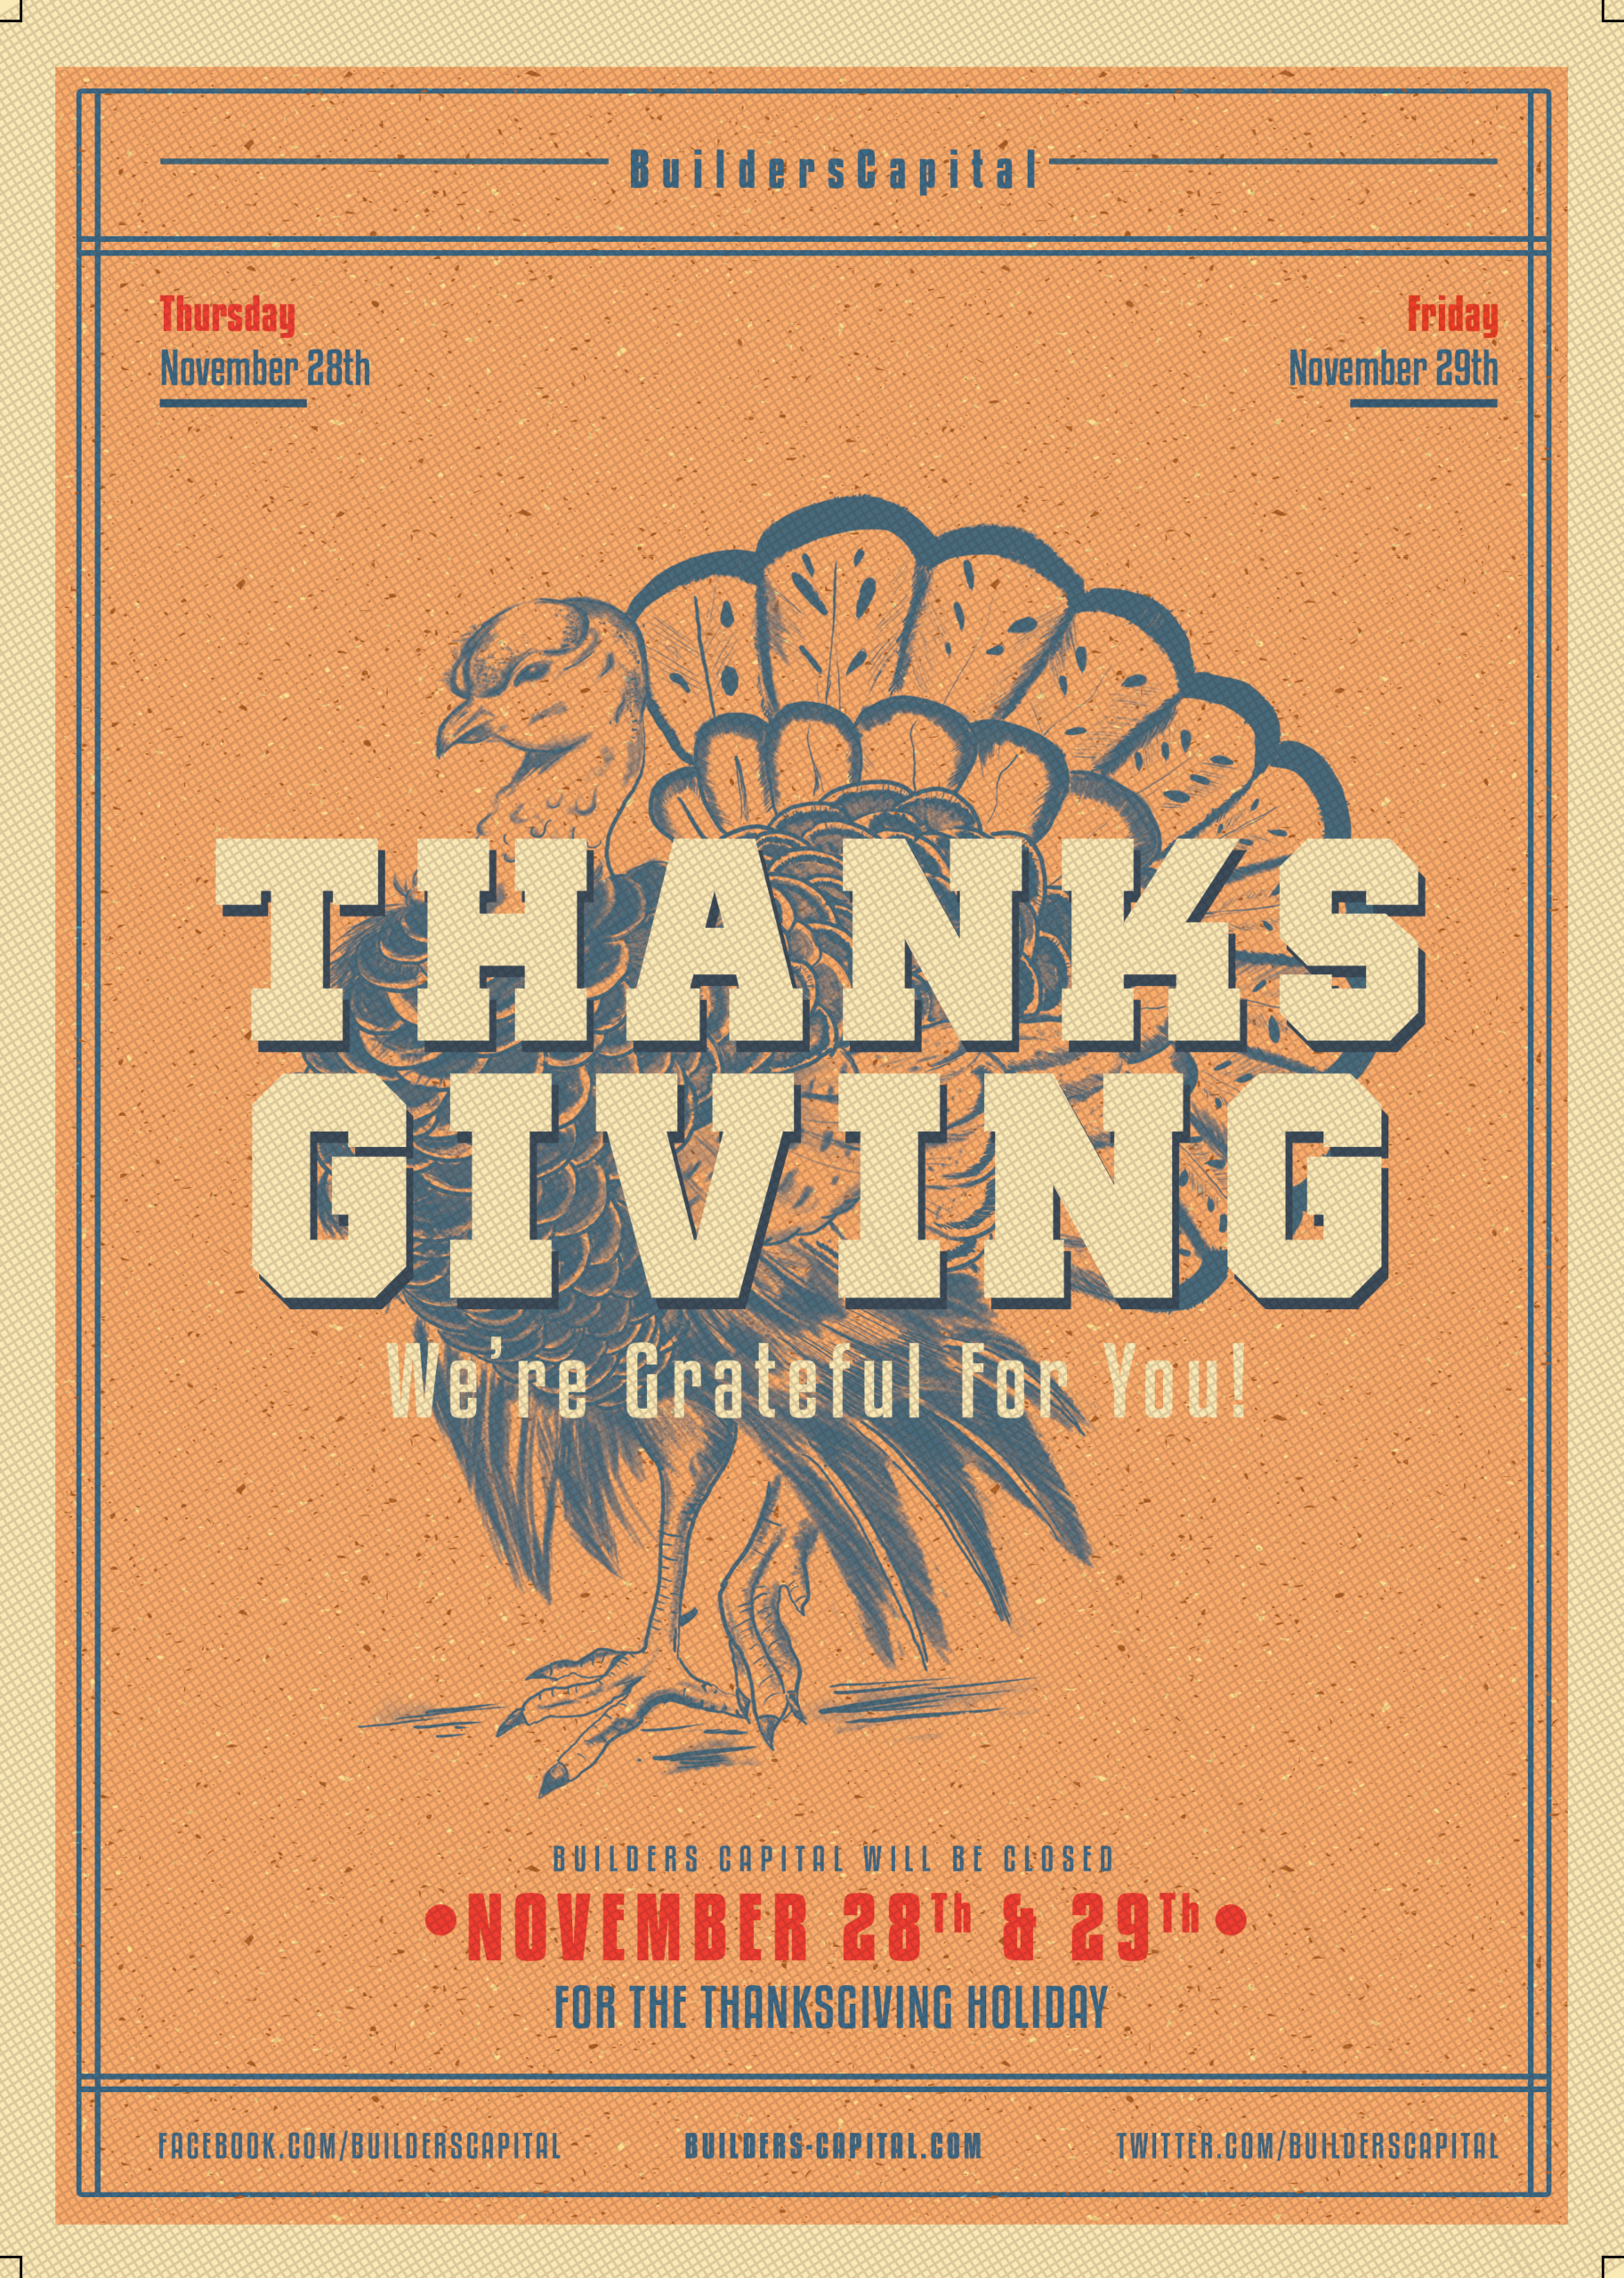 Builder's Capital will be Closed for the Thanksgiving Holiday